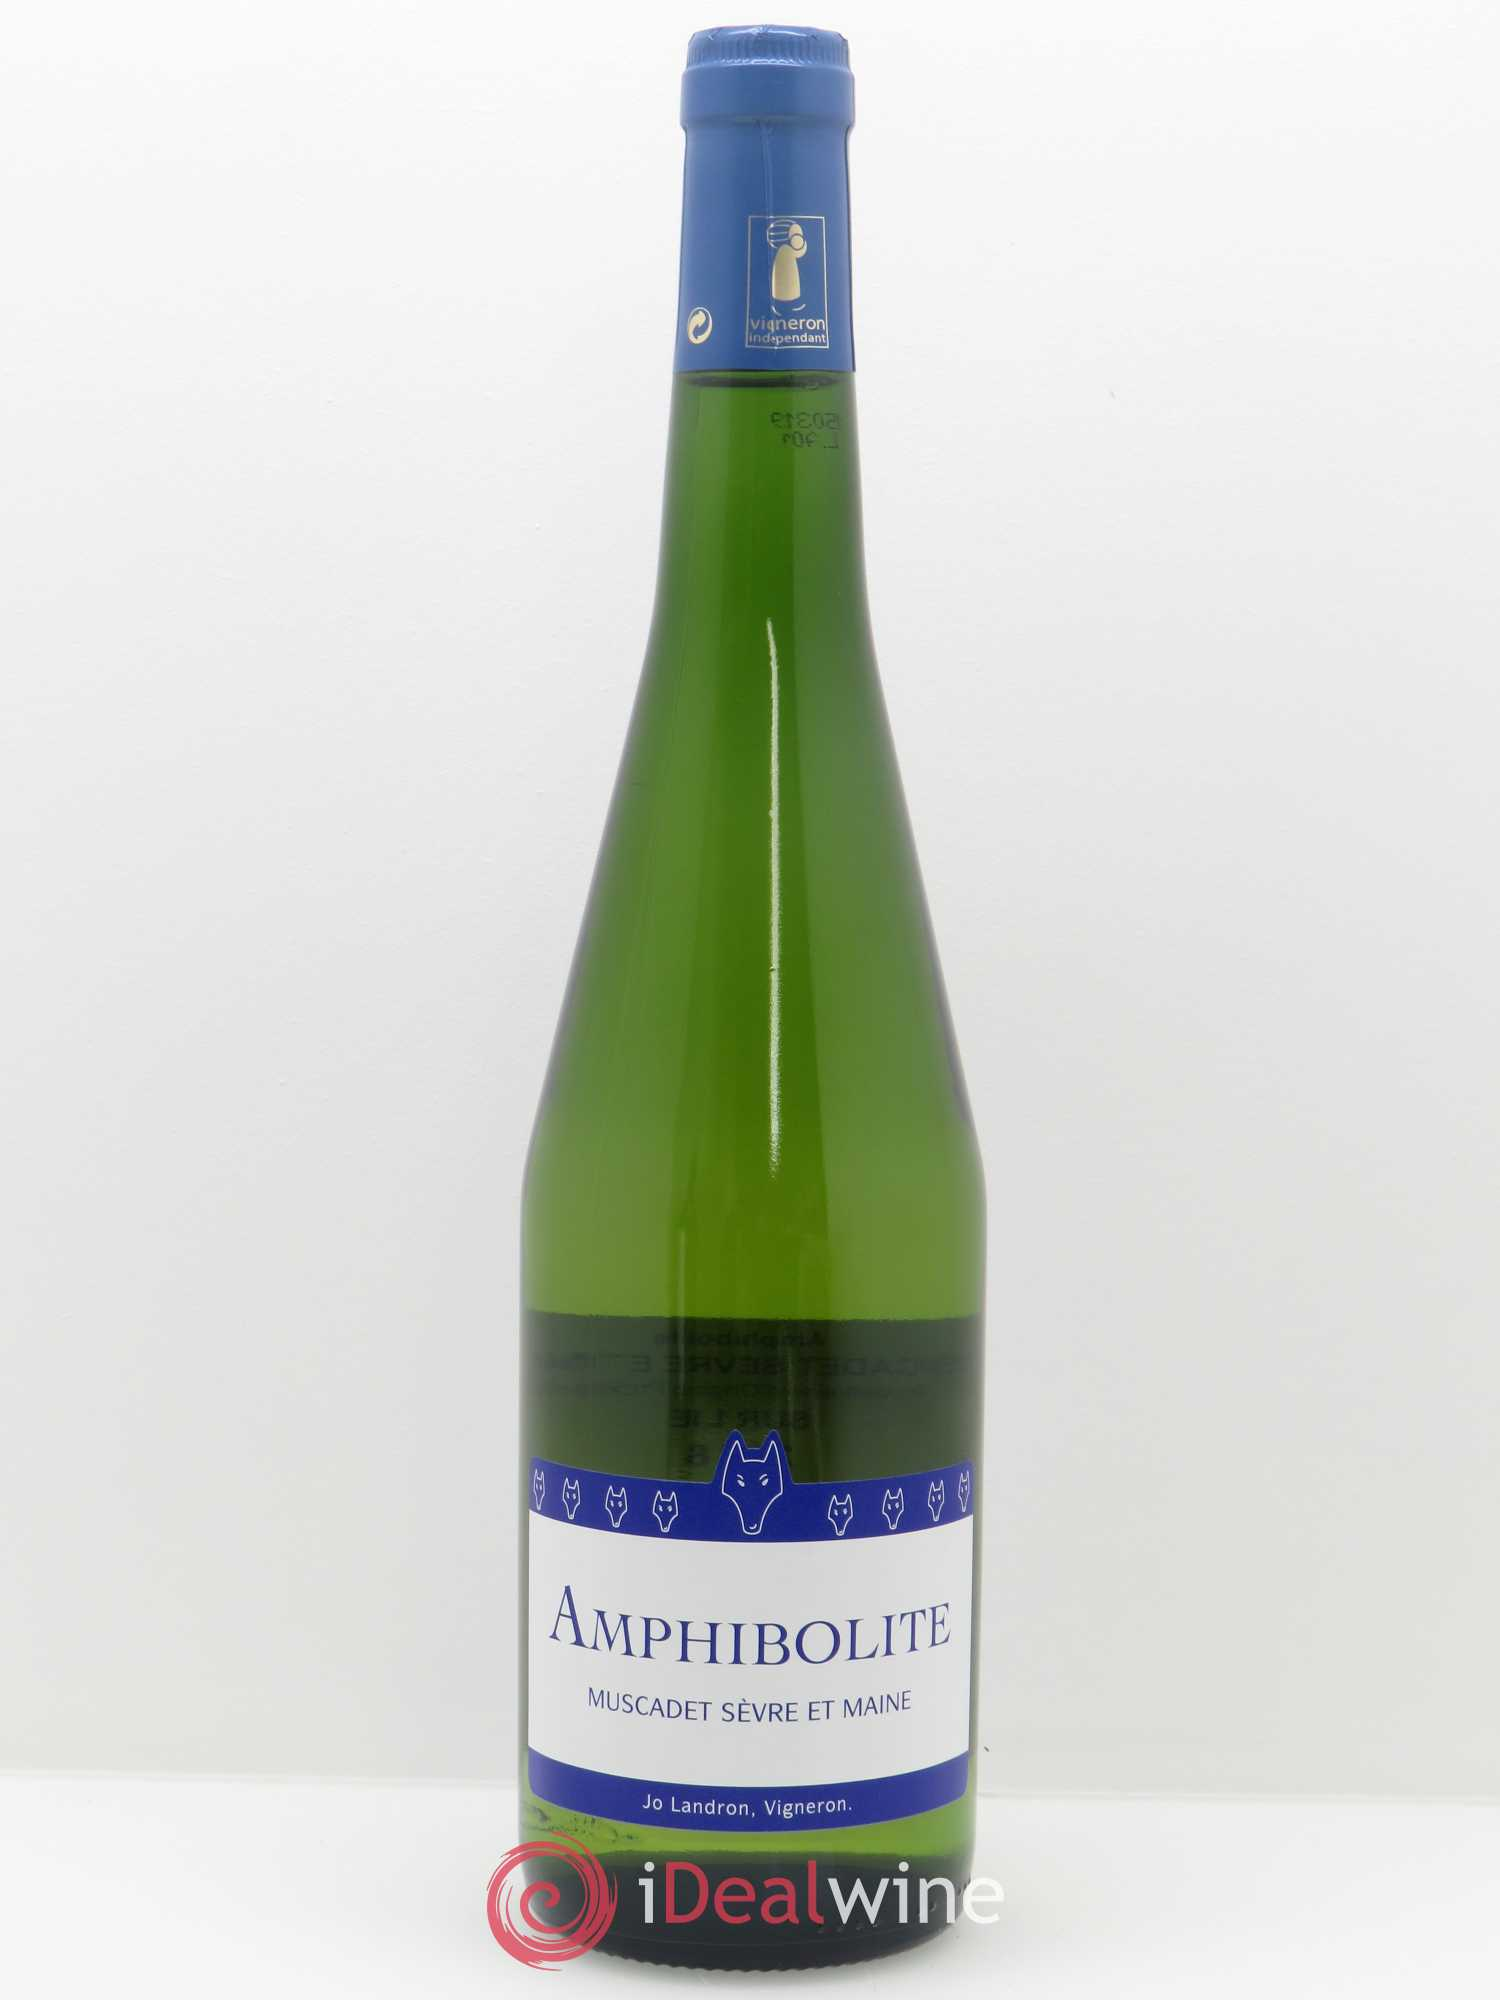 Muscadet-Sèvre-et-Maine Amphibolite Nature Jo Landron  2018 - Lot of 1 Bottle